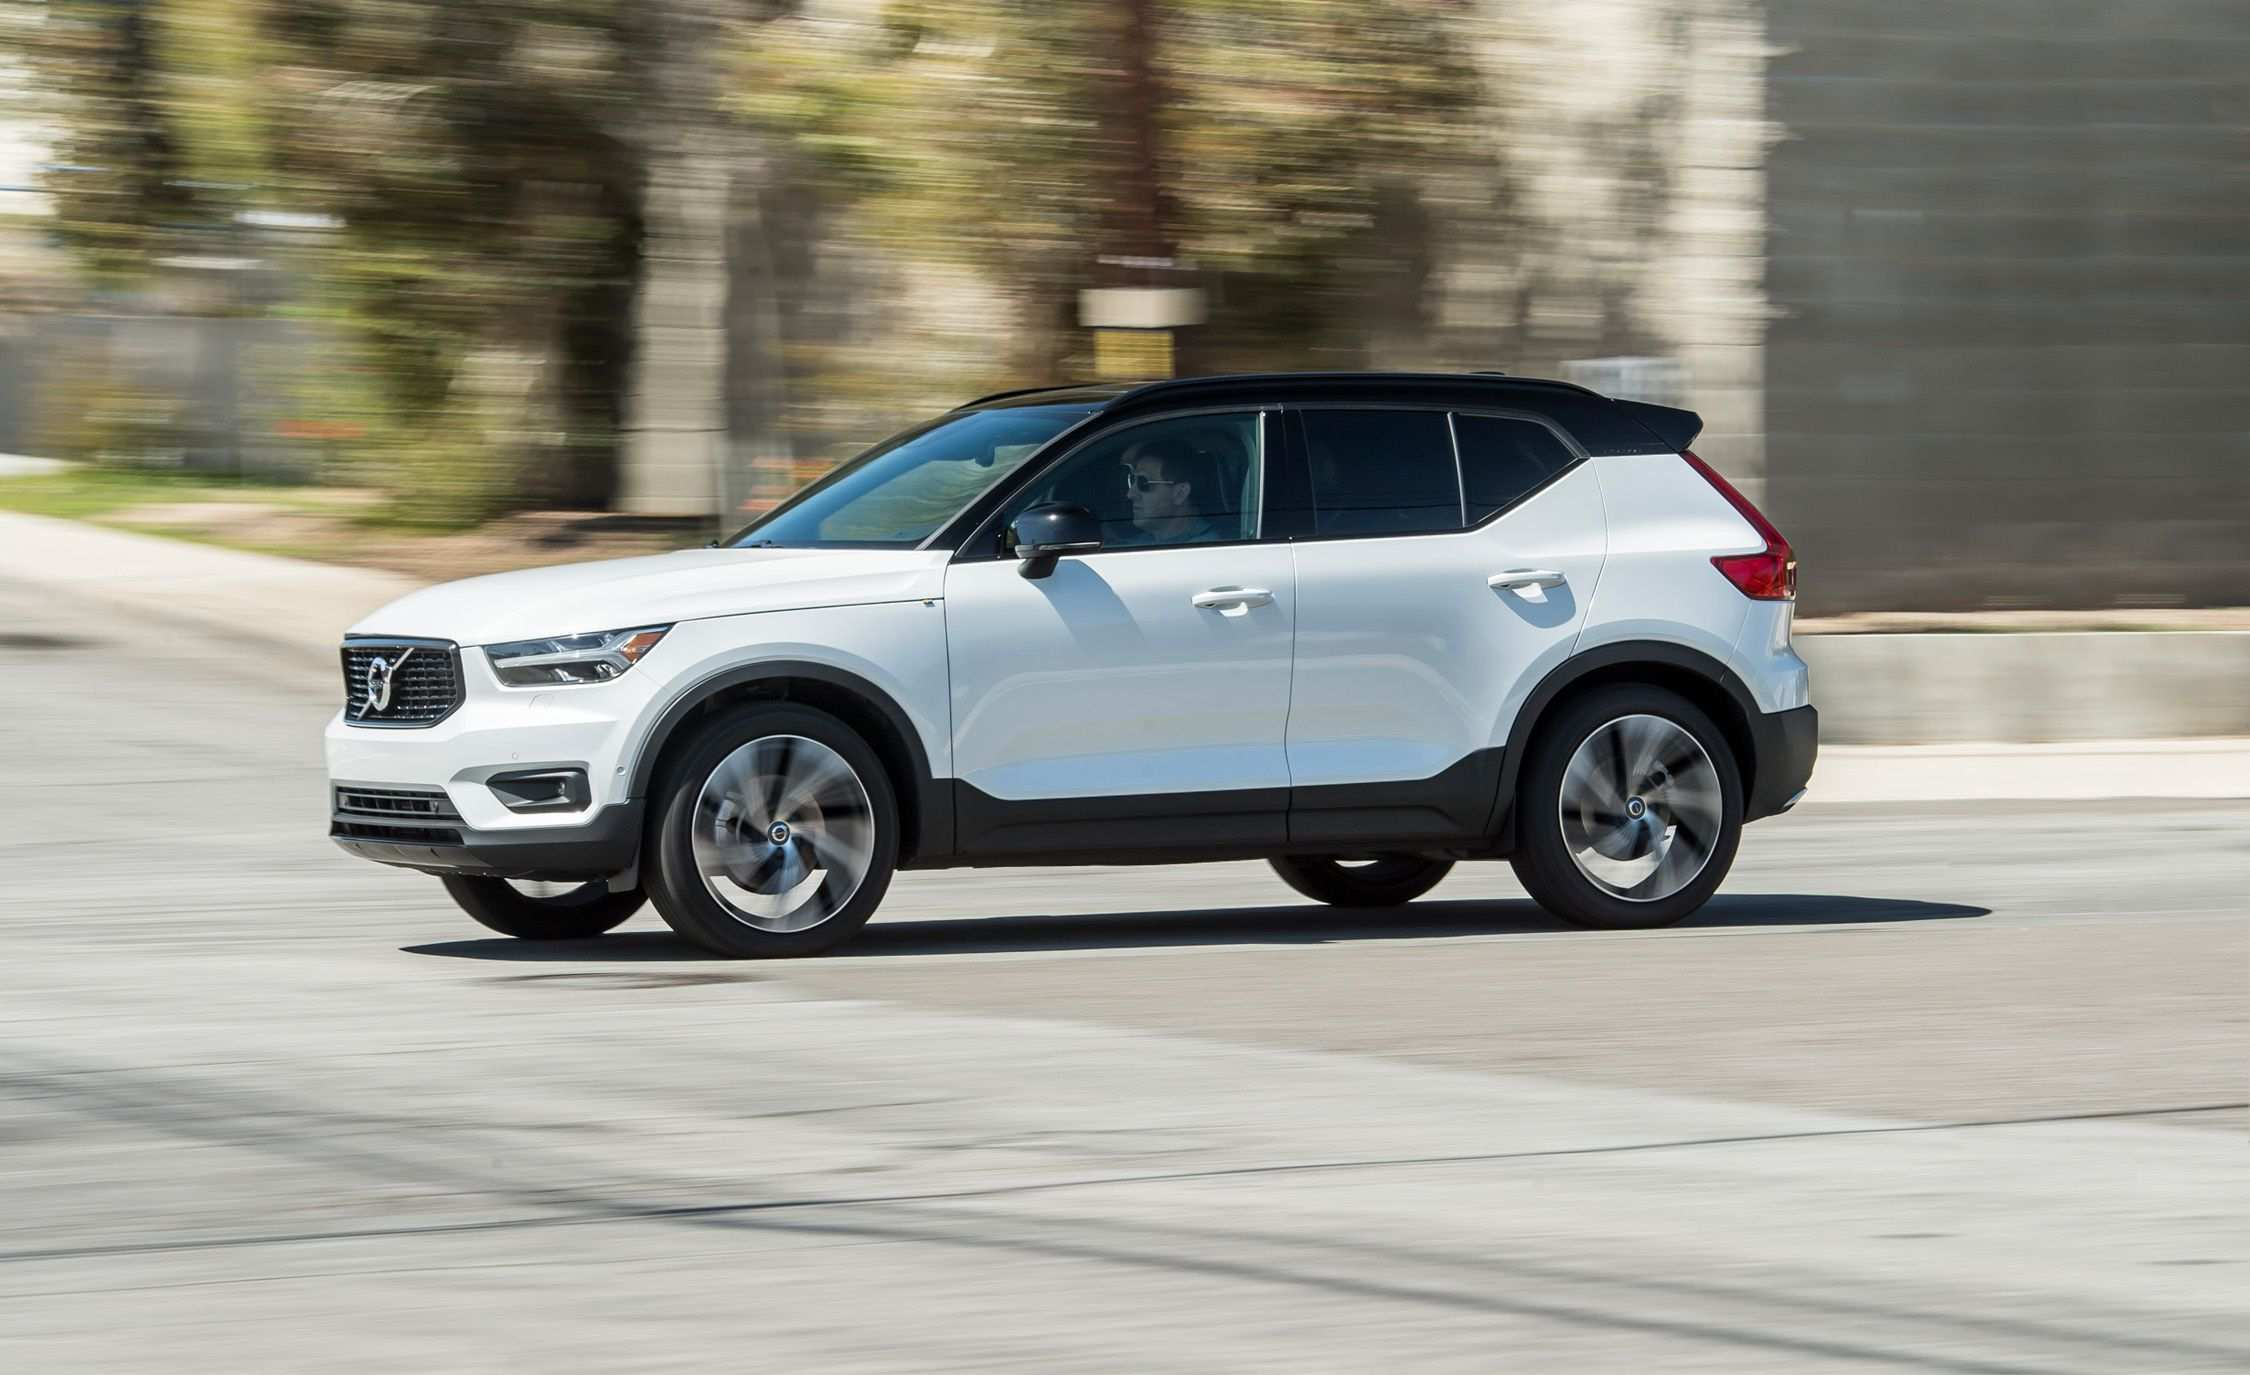 71 Gallery of Volvo 2019 Xc40 Review Pictures with Volvo 2019 Xc40 Review